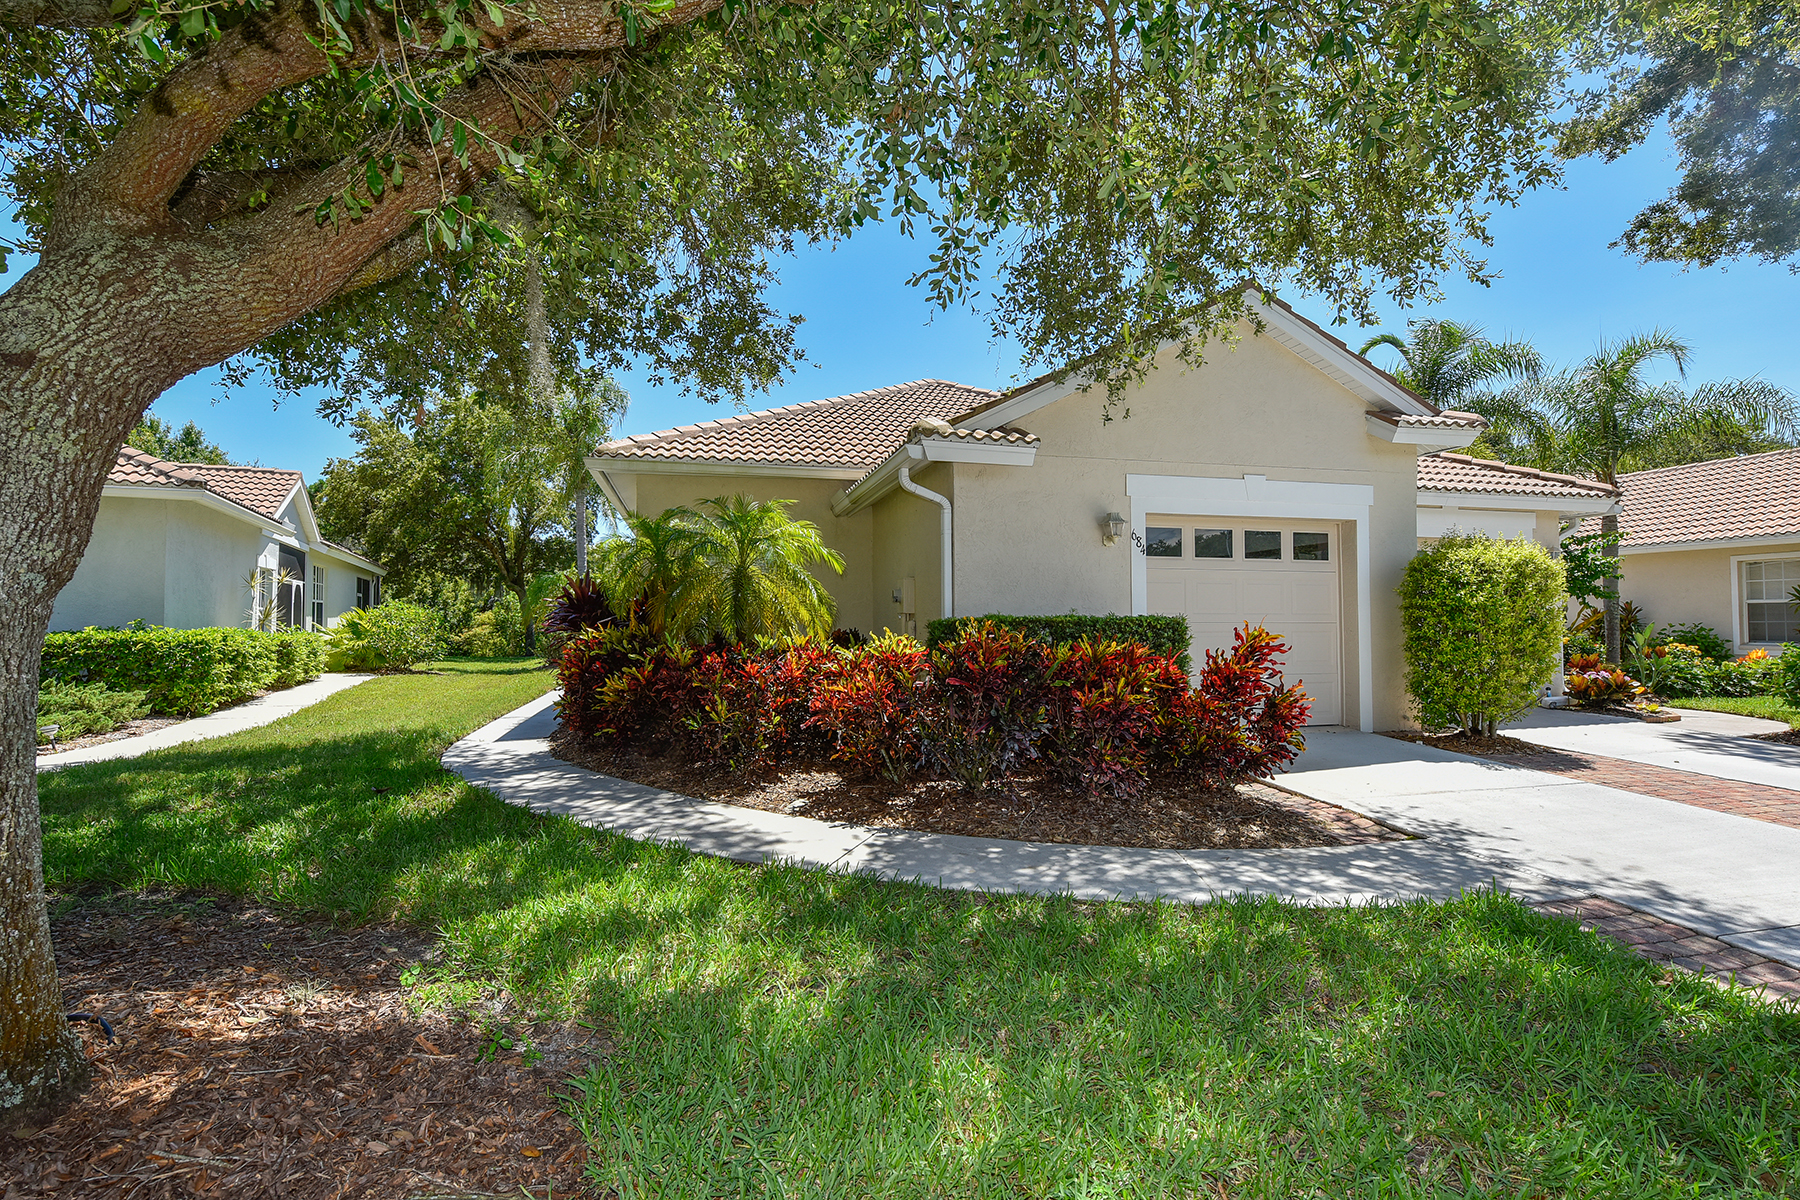 Townhouse for Sale at PELICAN POINTE 684 Back Nine Dr Venice, Florida, 34285 United States